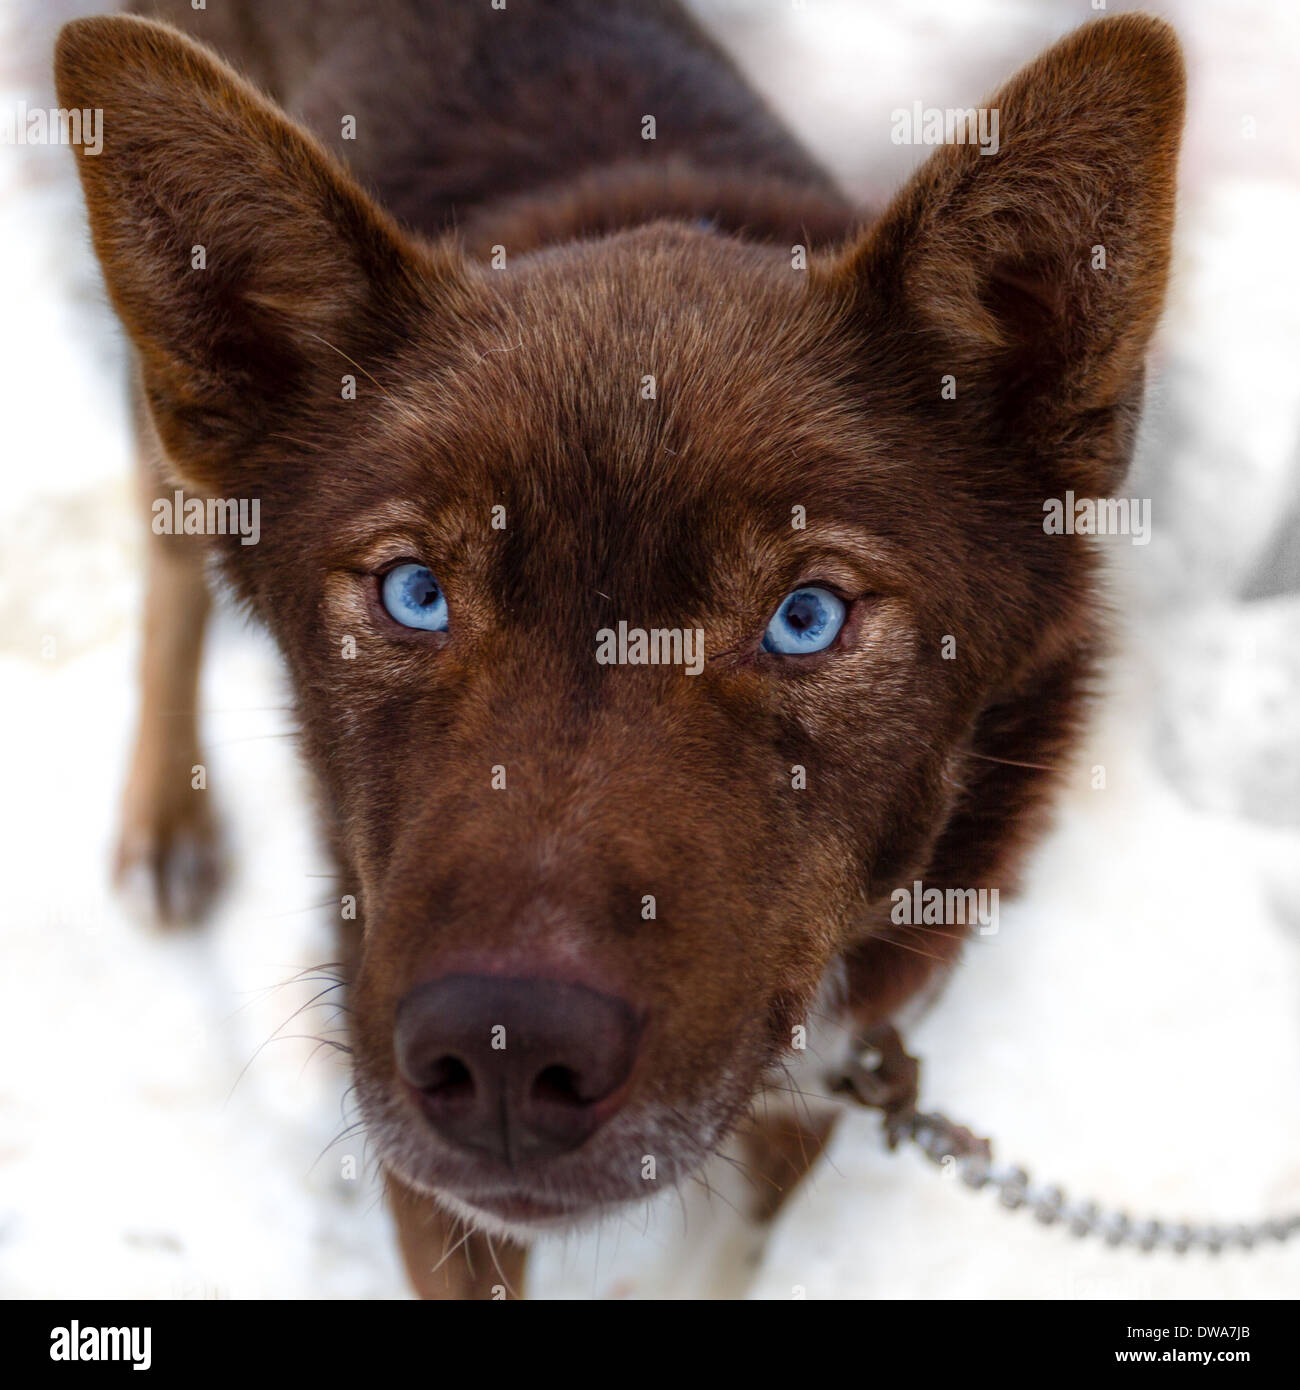 Piercing blue eyes of a working husky - Stock Image